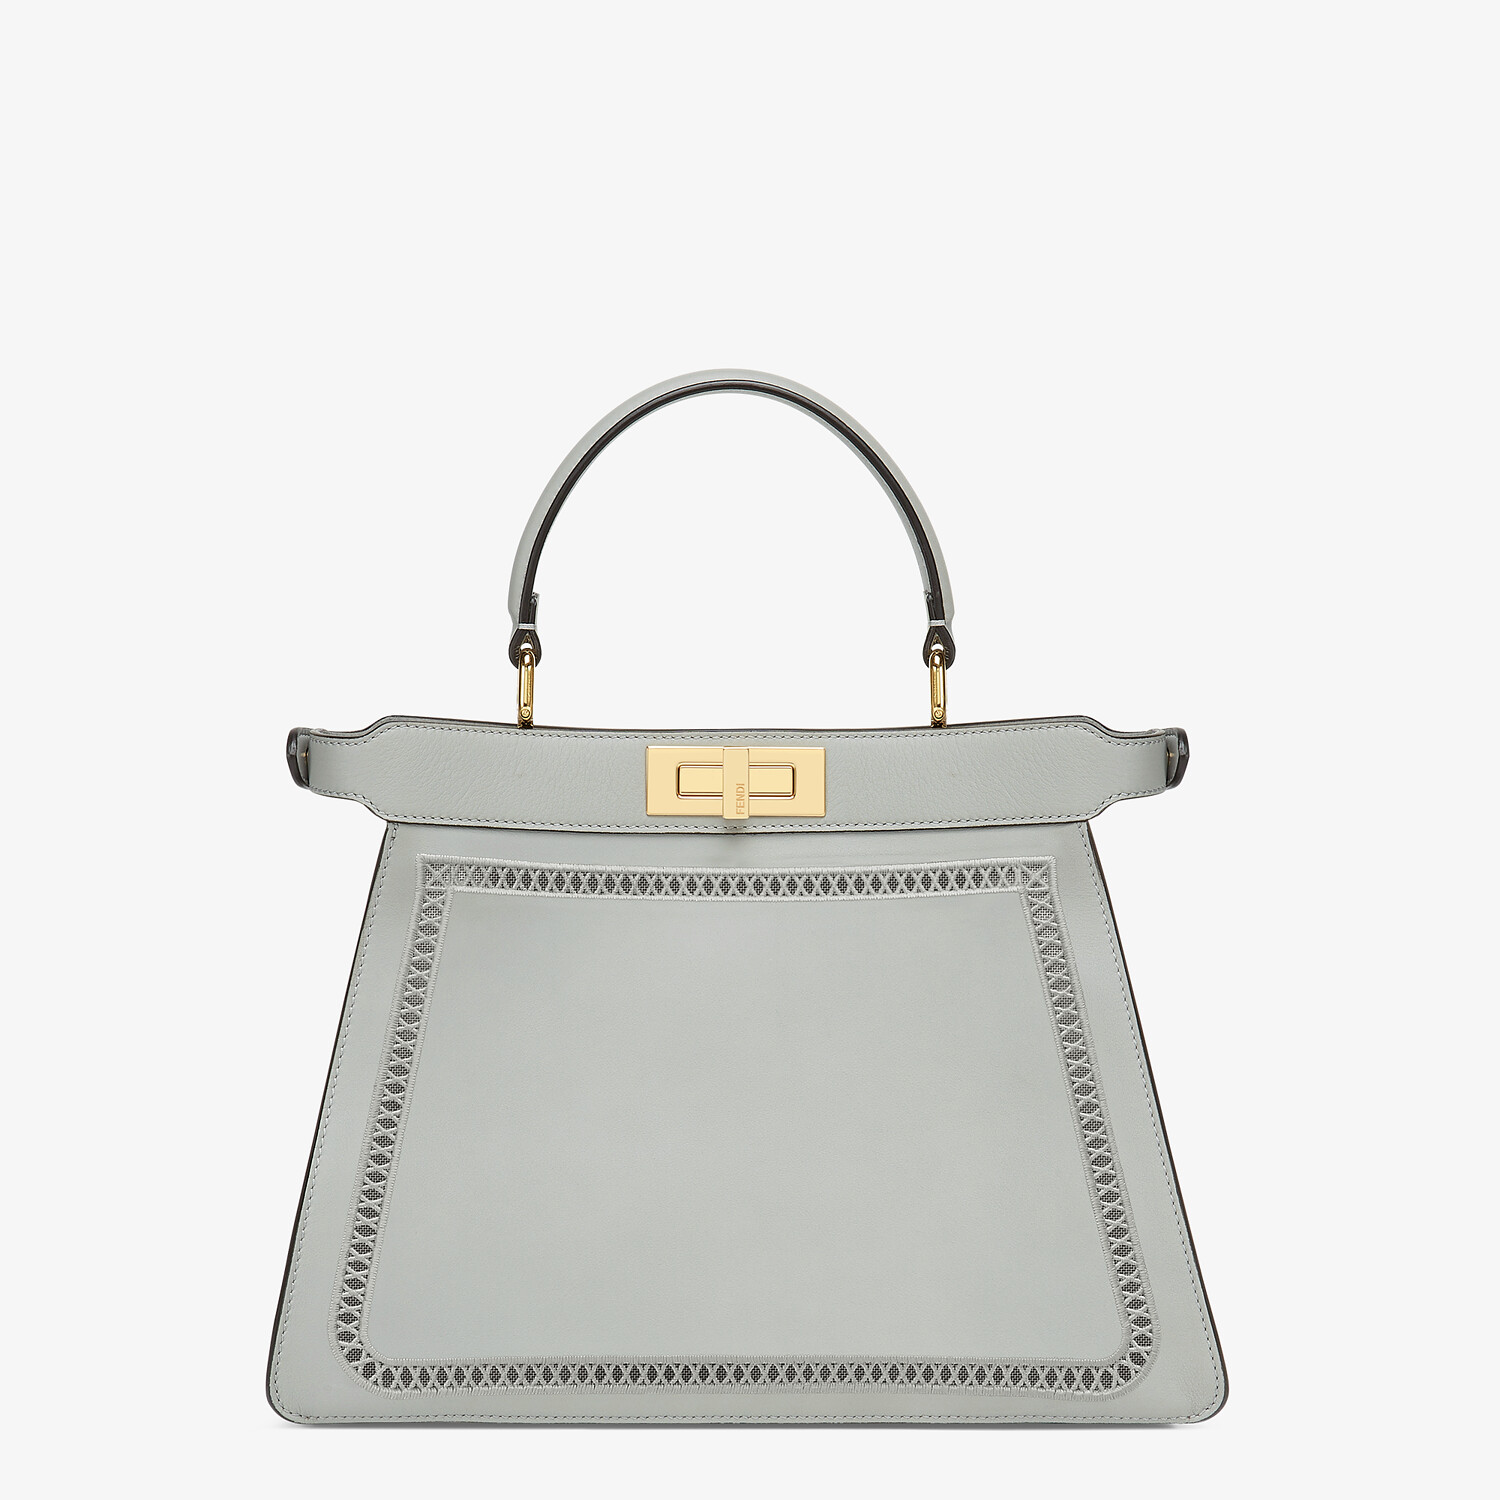 FENDI PEEKABOO ISEEU MEDIUM - Embroidered gray leather bag - view 6 detail